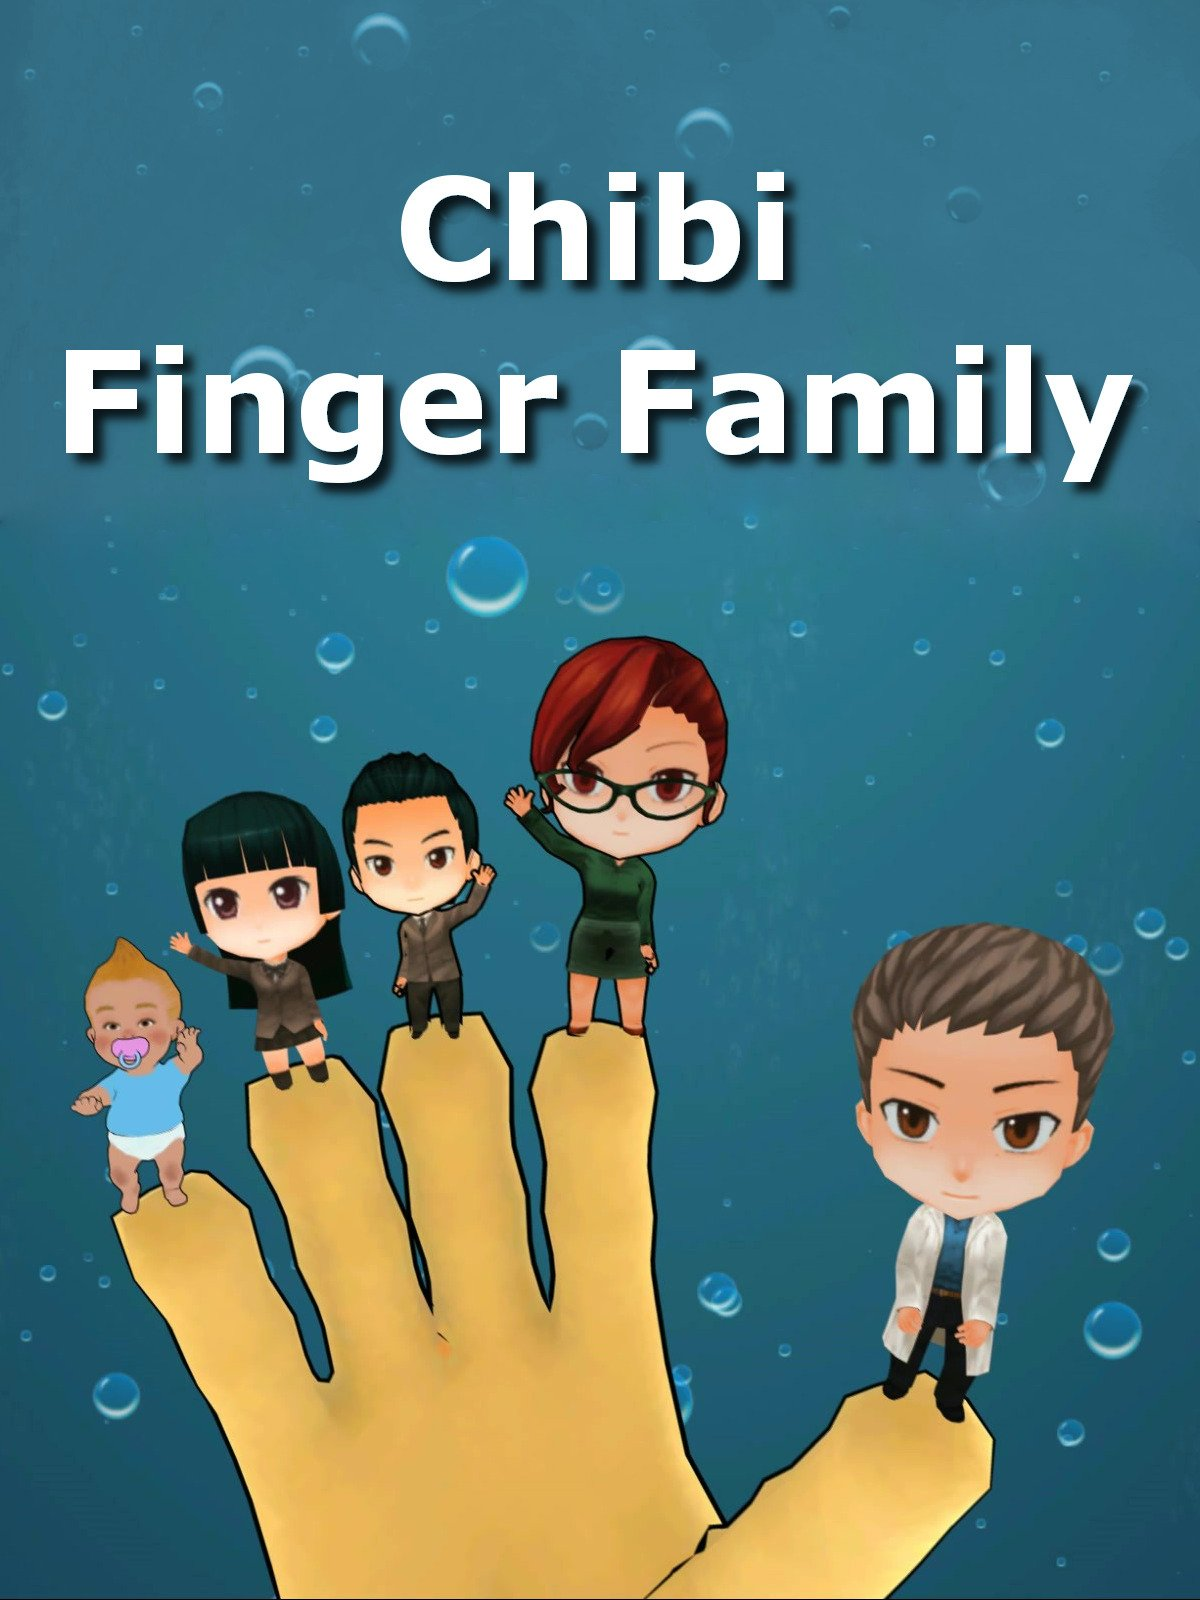 Chibi Finger Family Song